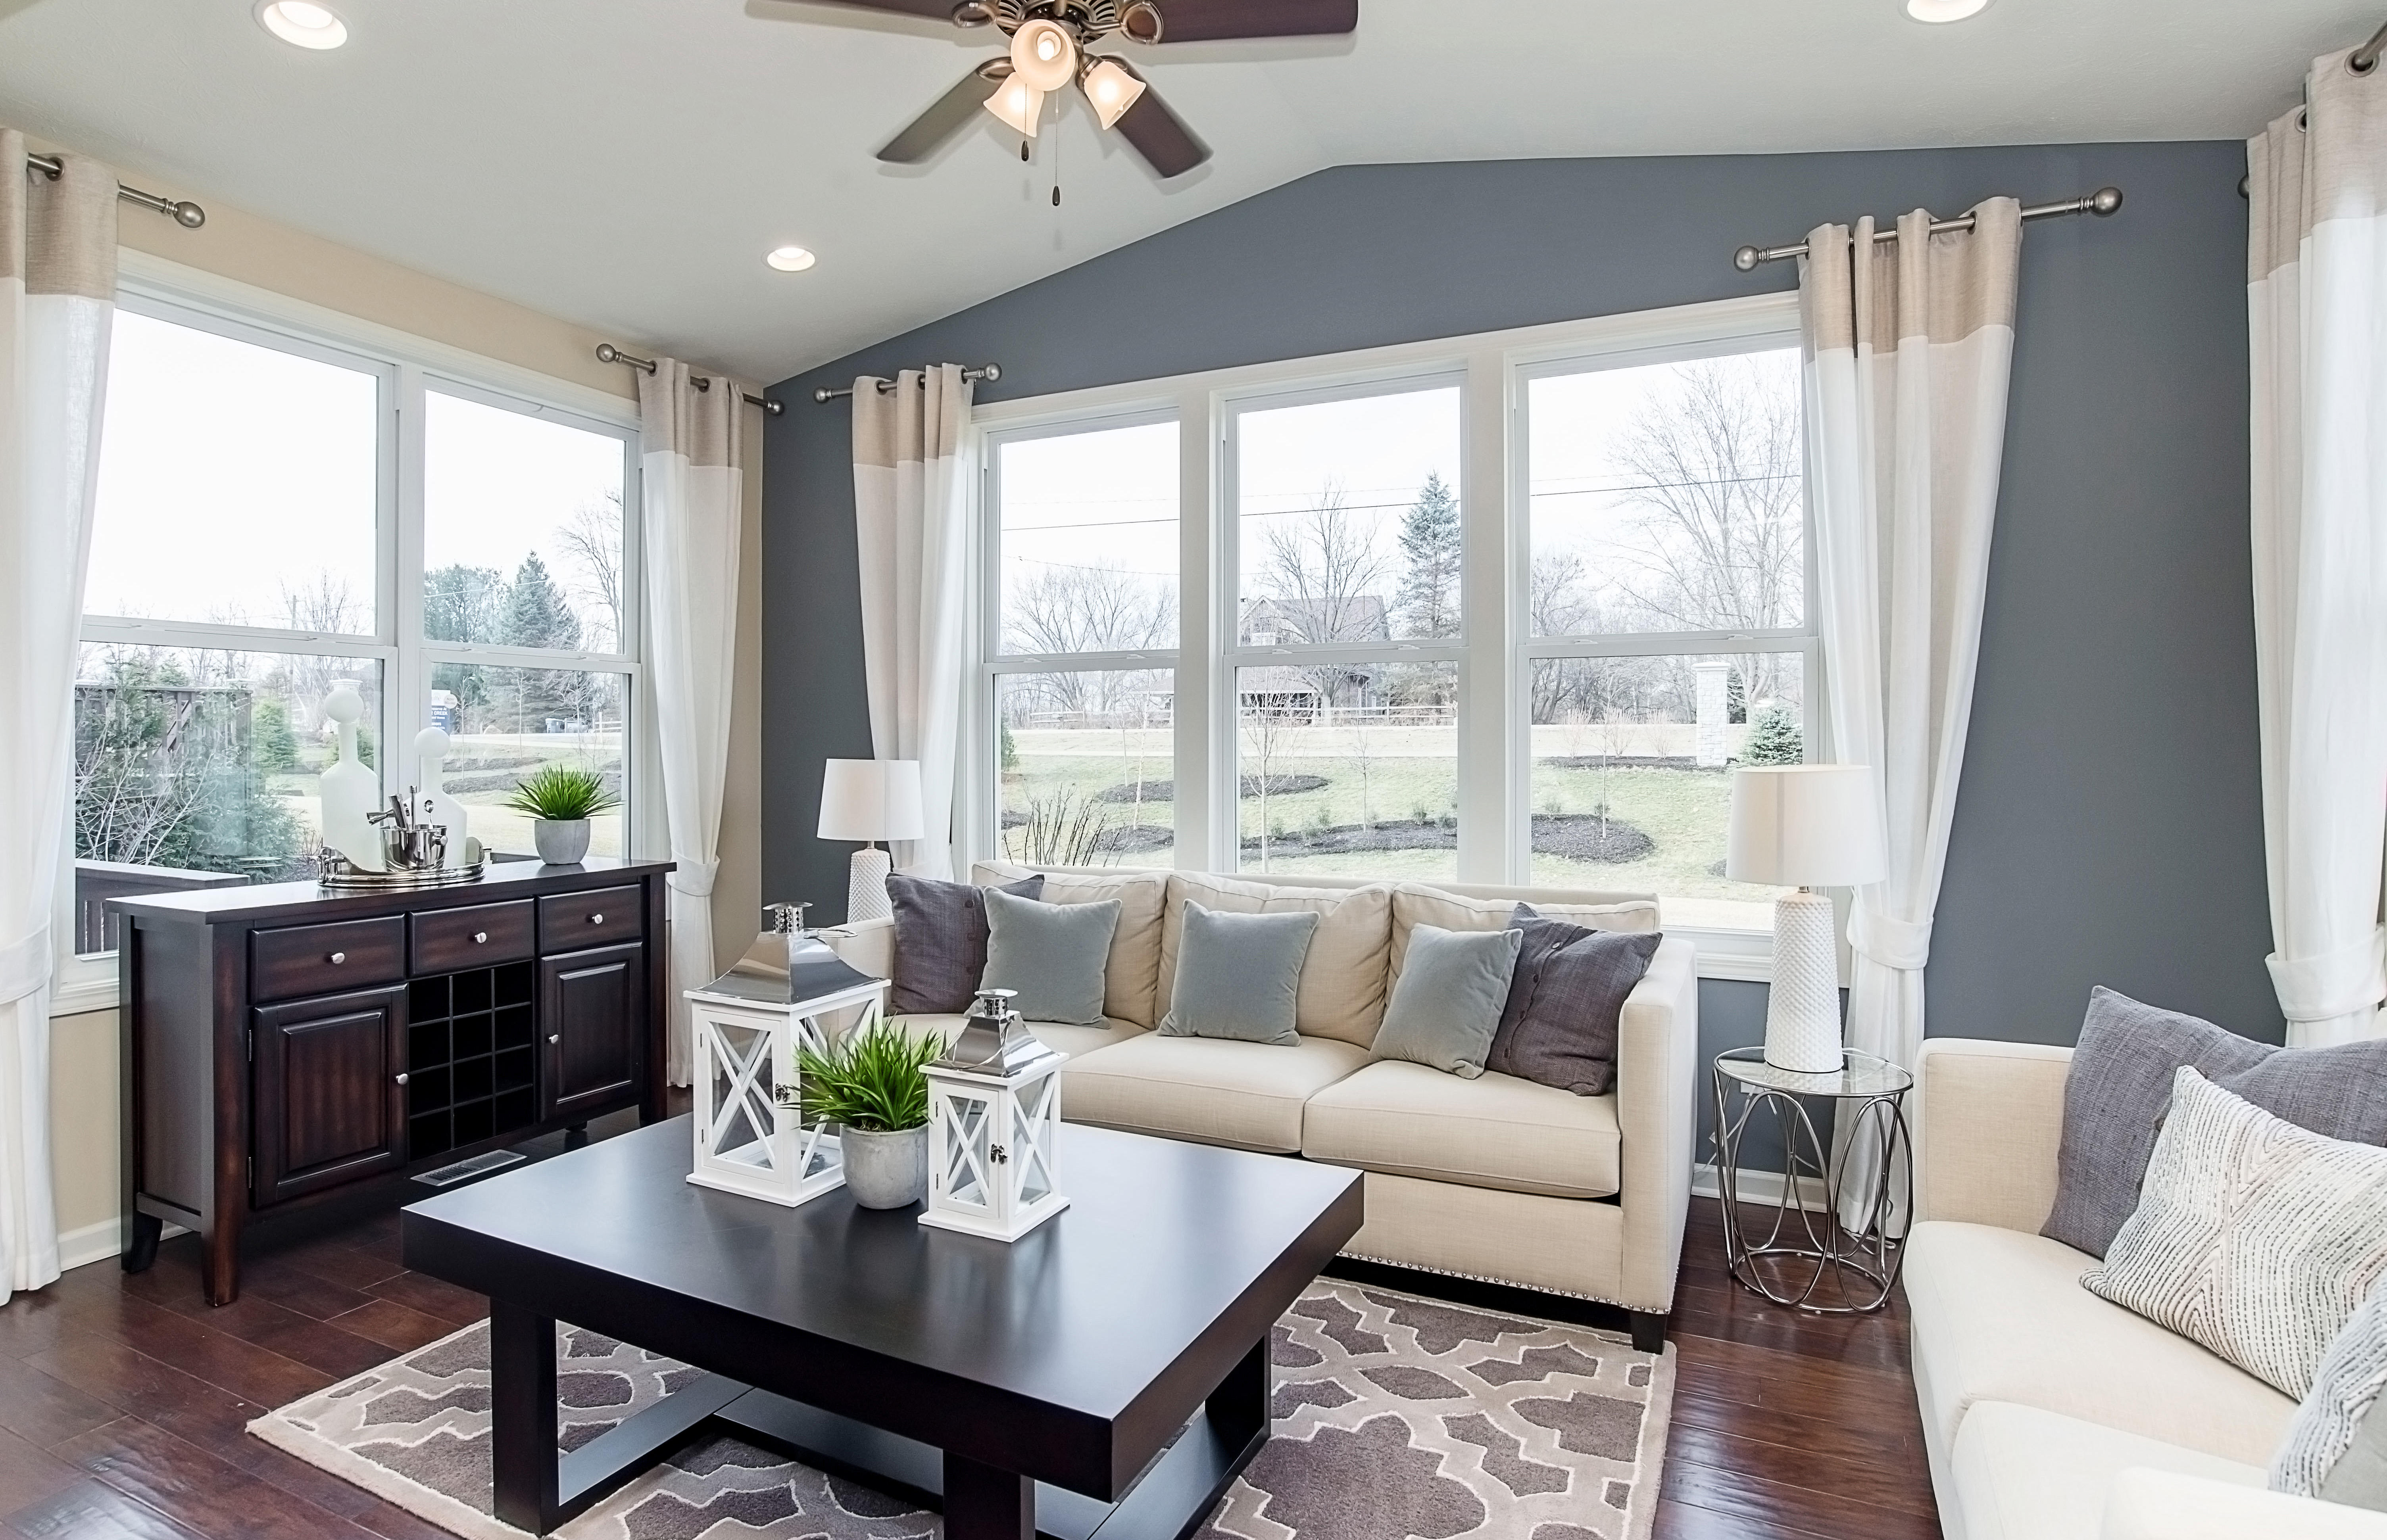 Bent Creek by Pulte Homes image 4